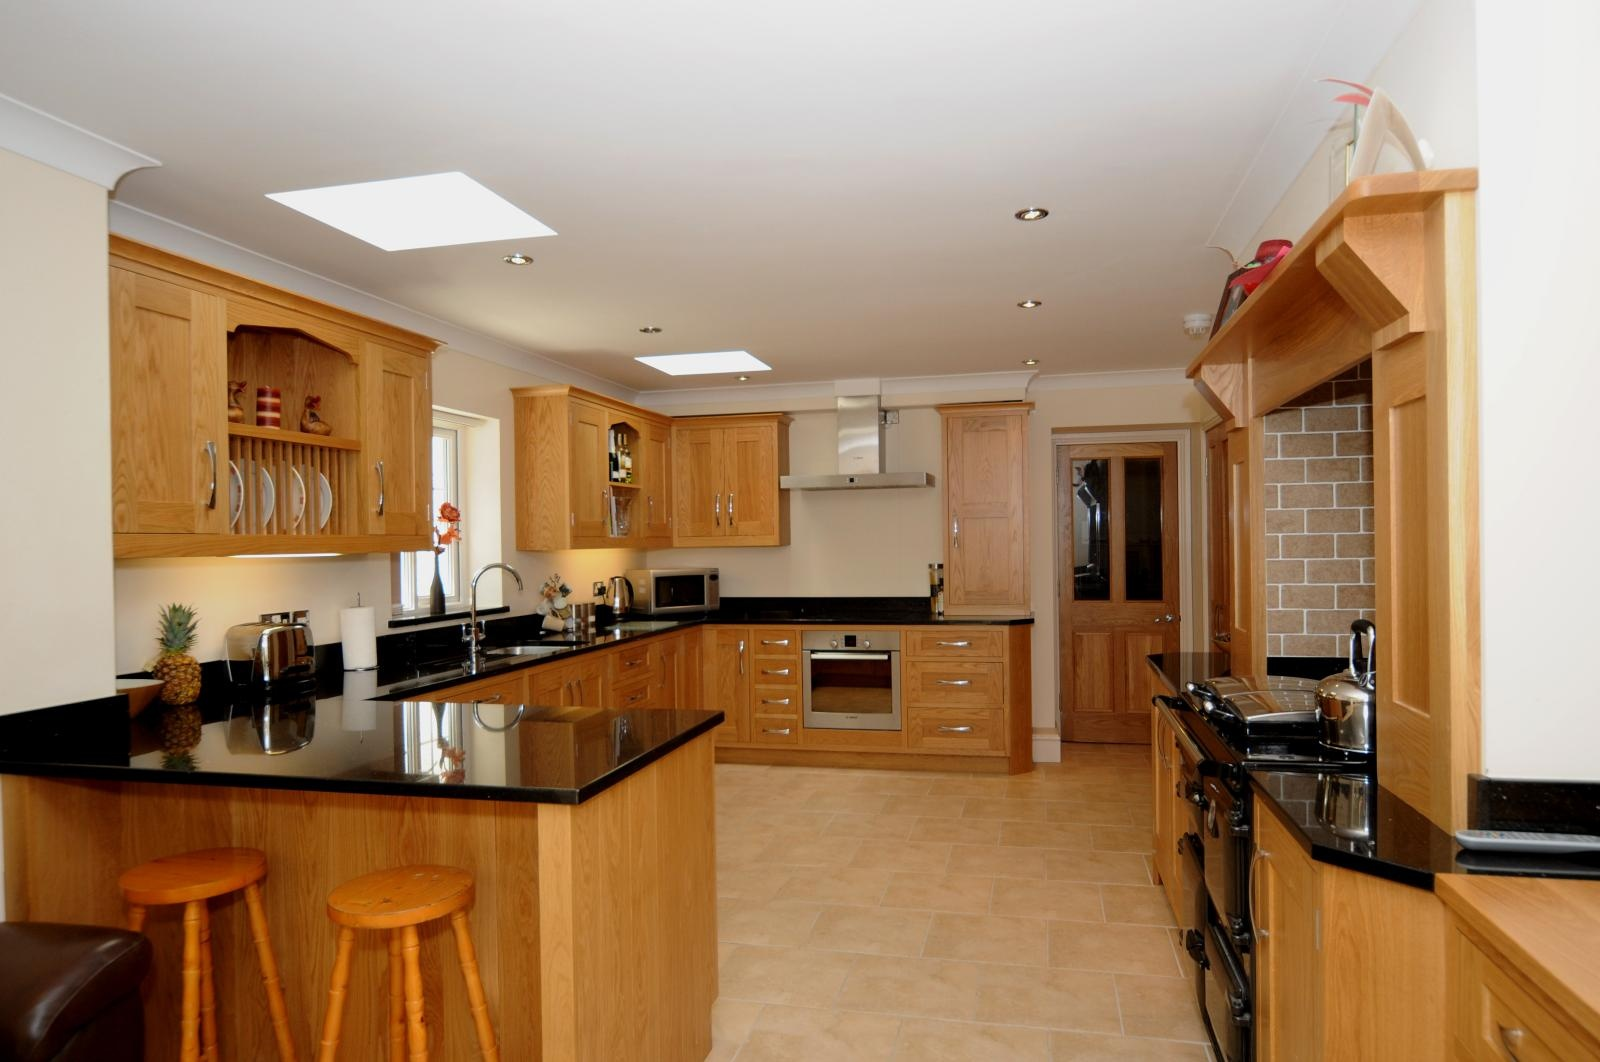 Oak shaker kitchen st davids mark stone 39 s welsh kitchens for Oak kitchen ideas designs